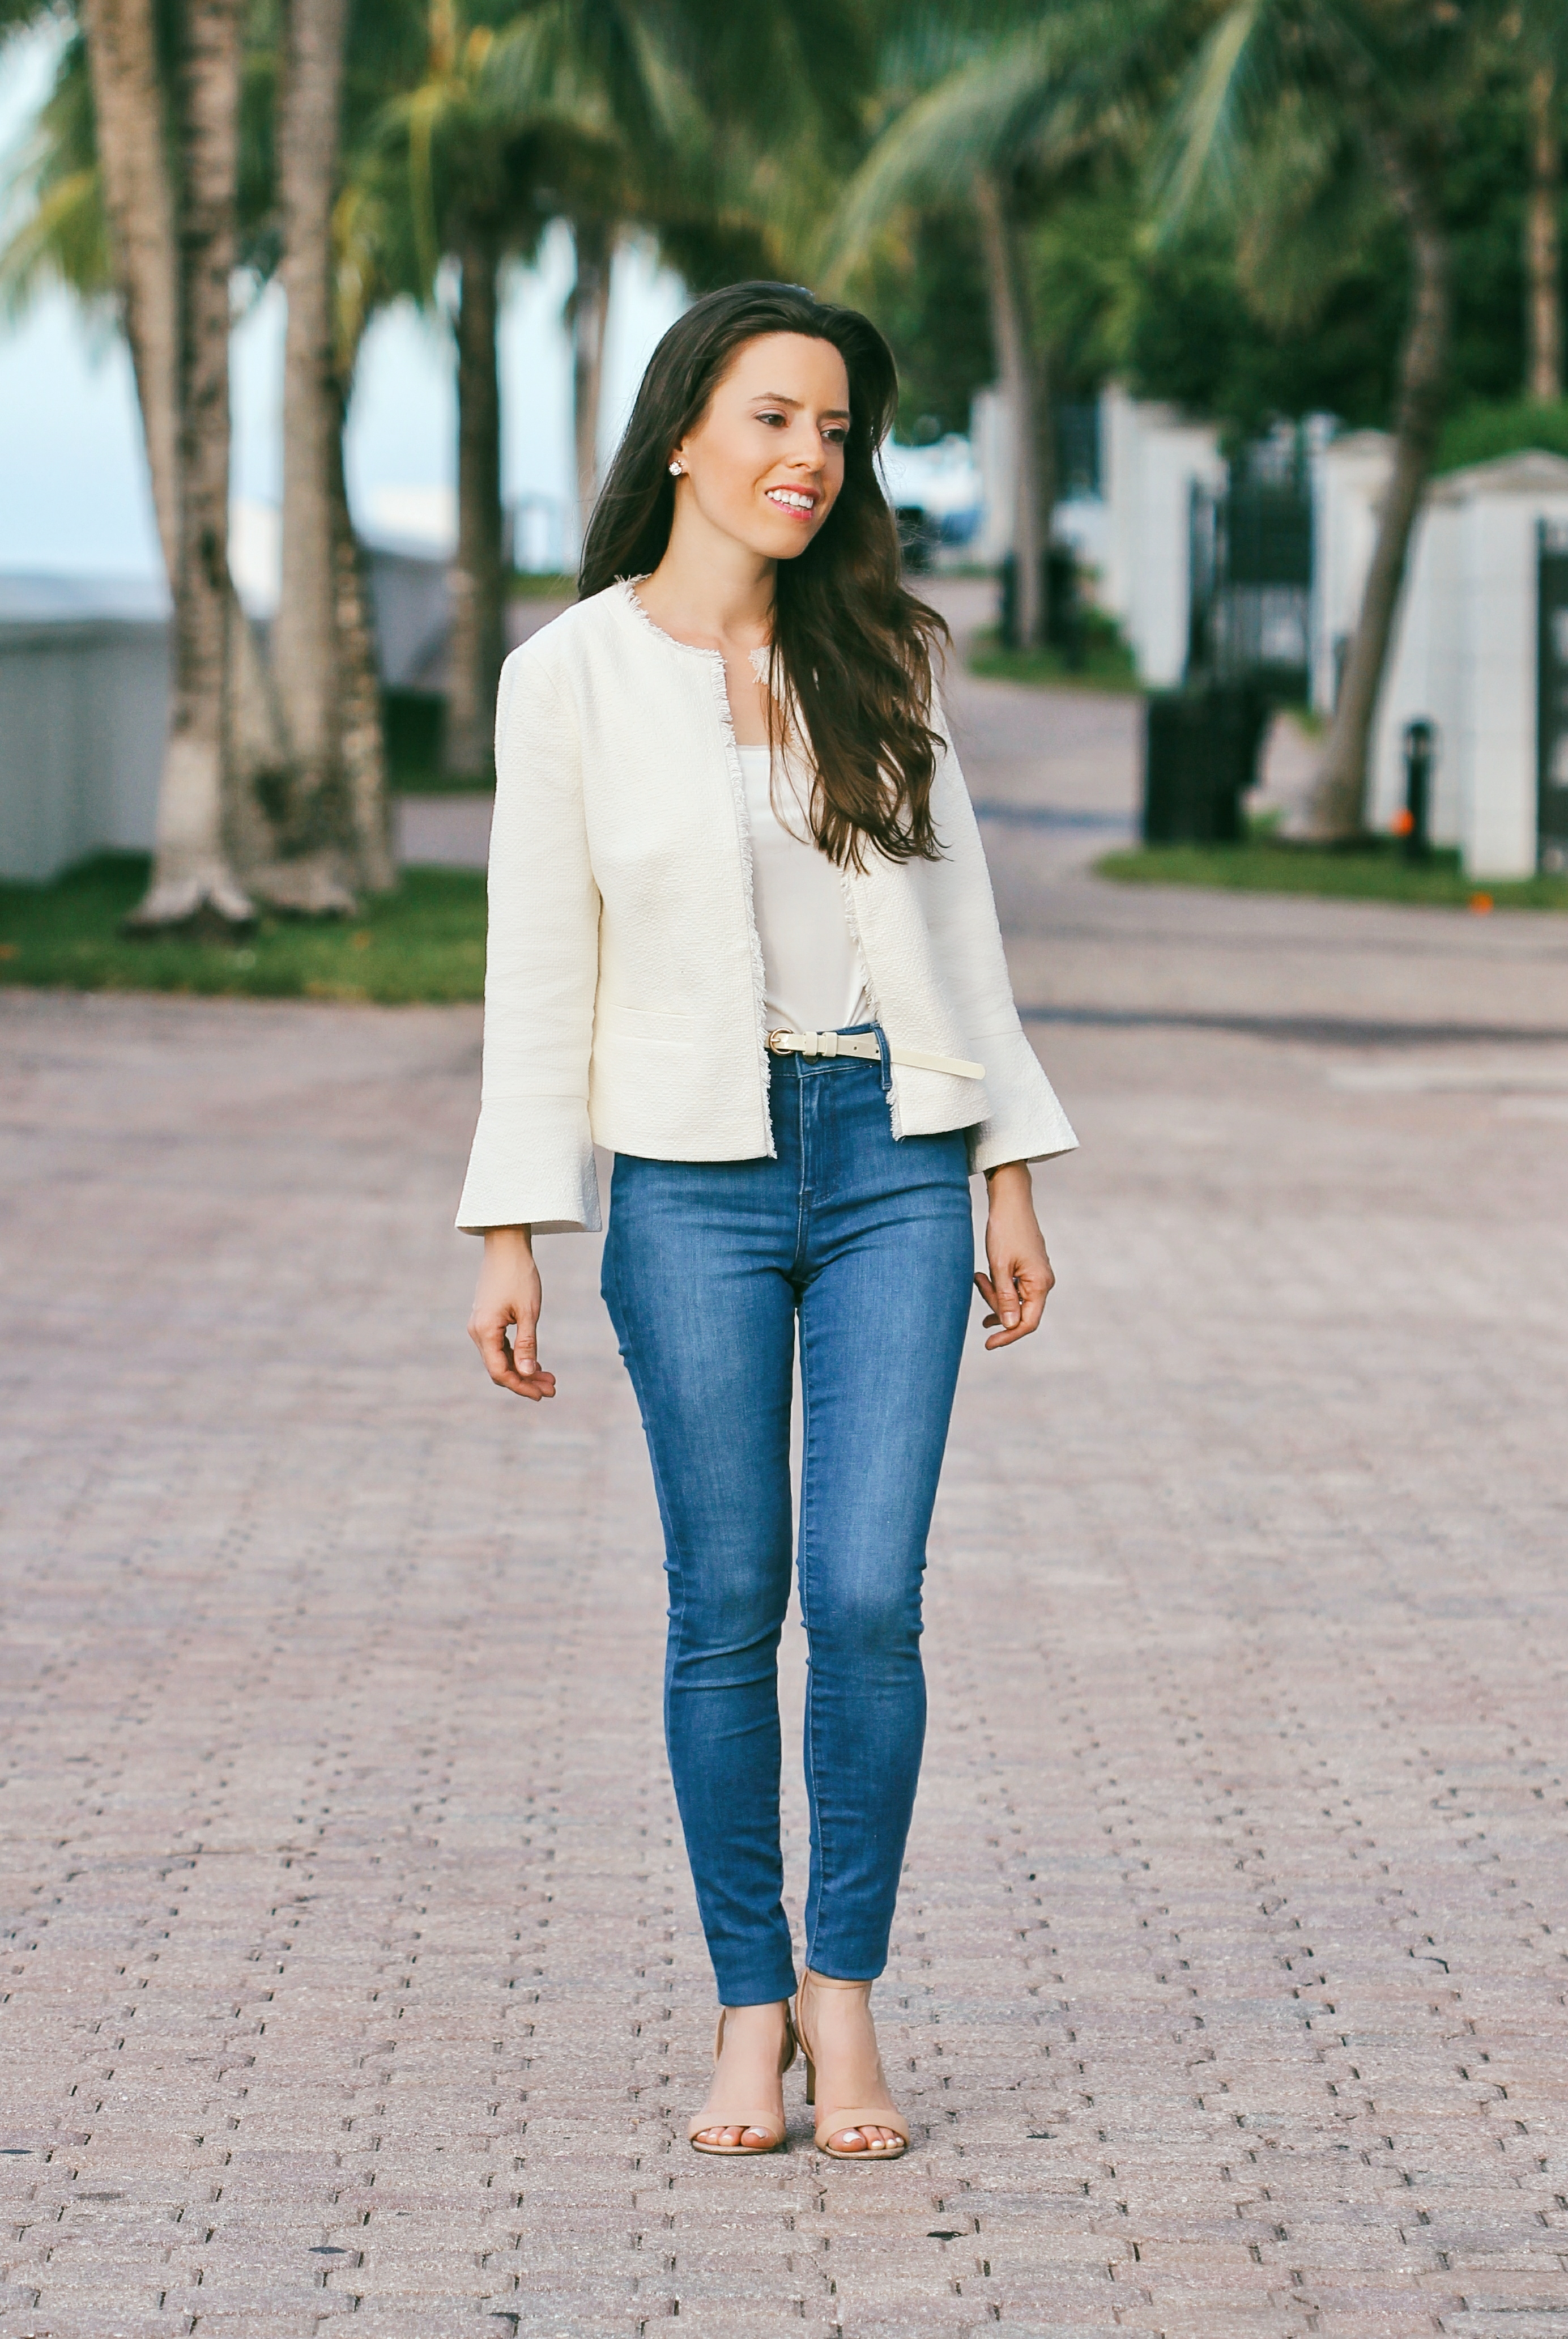 tweed jacket miami fashion blogger